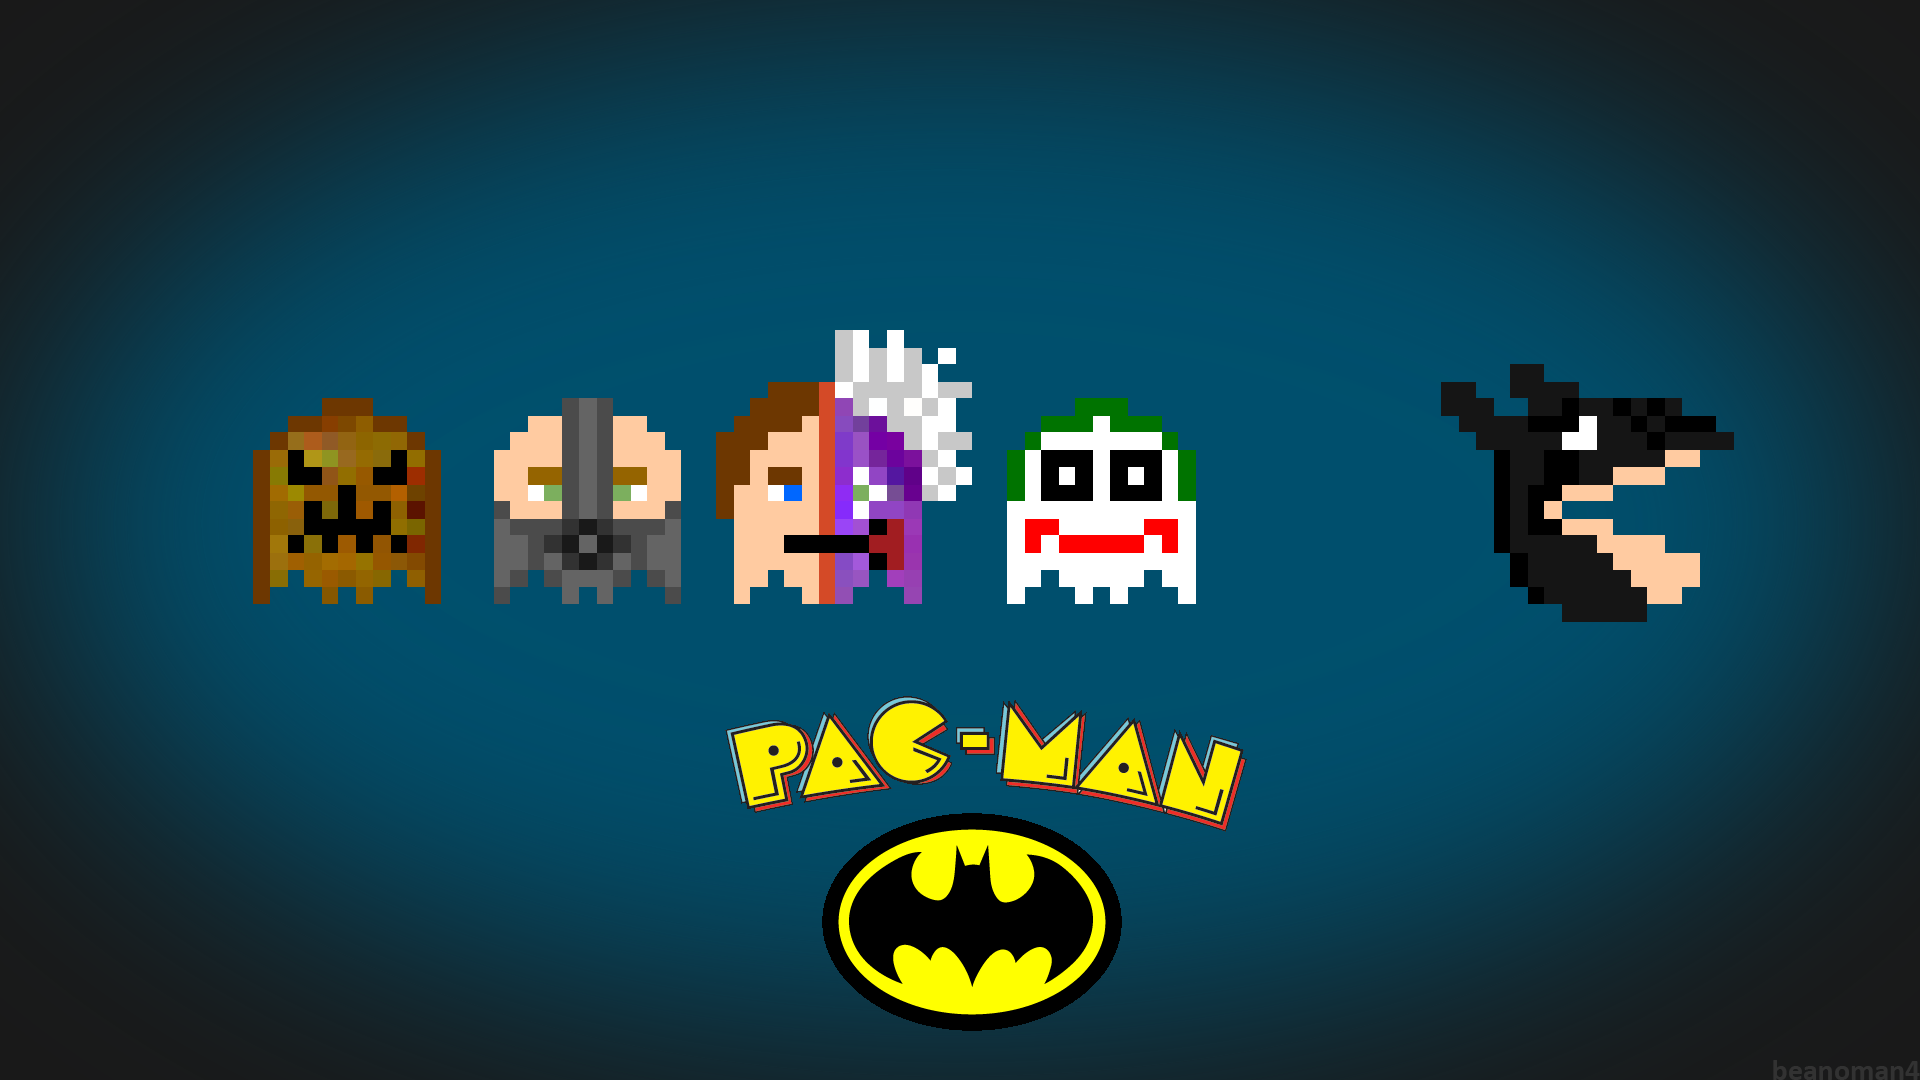 Download 1920x1080 Pacman HD Wallpapers for Free | B.SCB WP&BG Collection